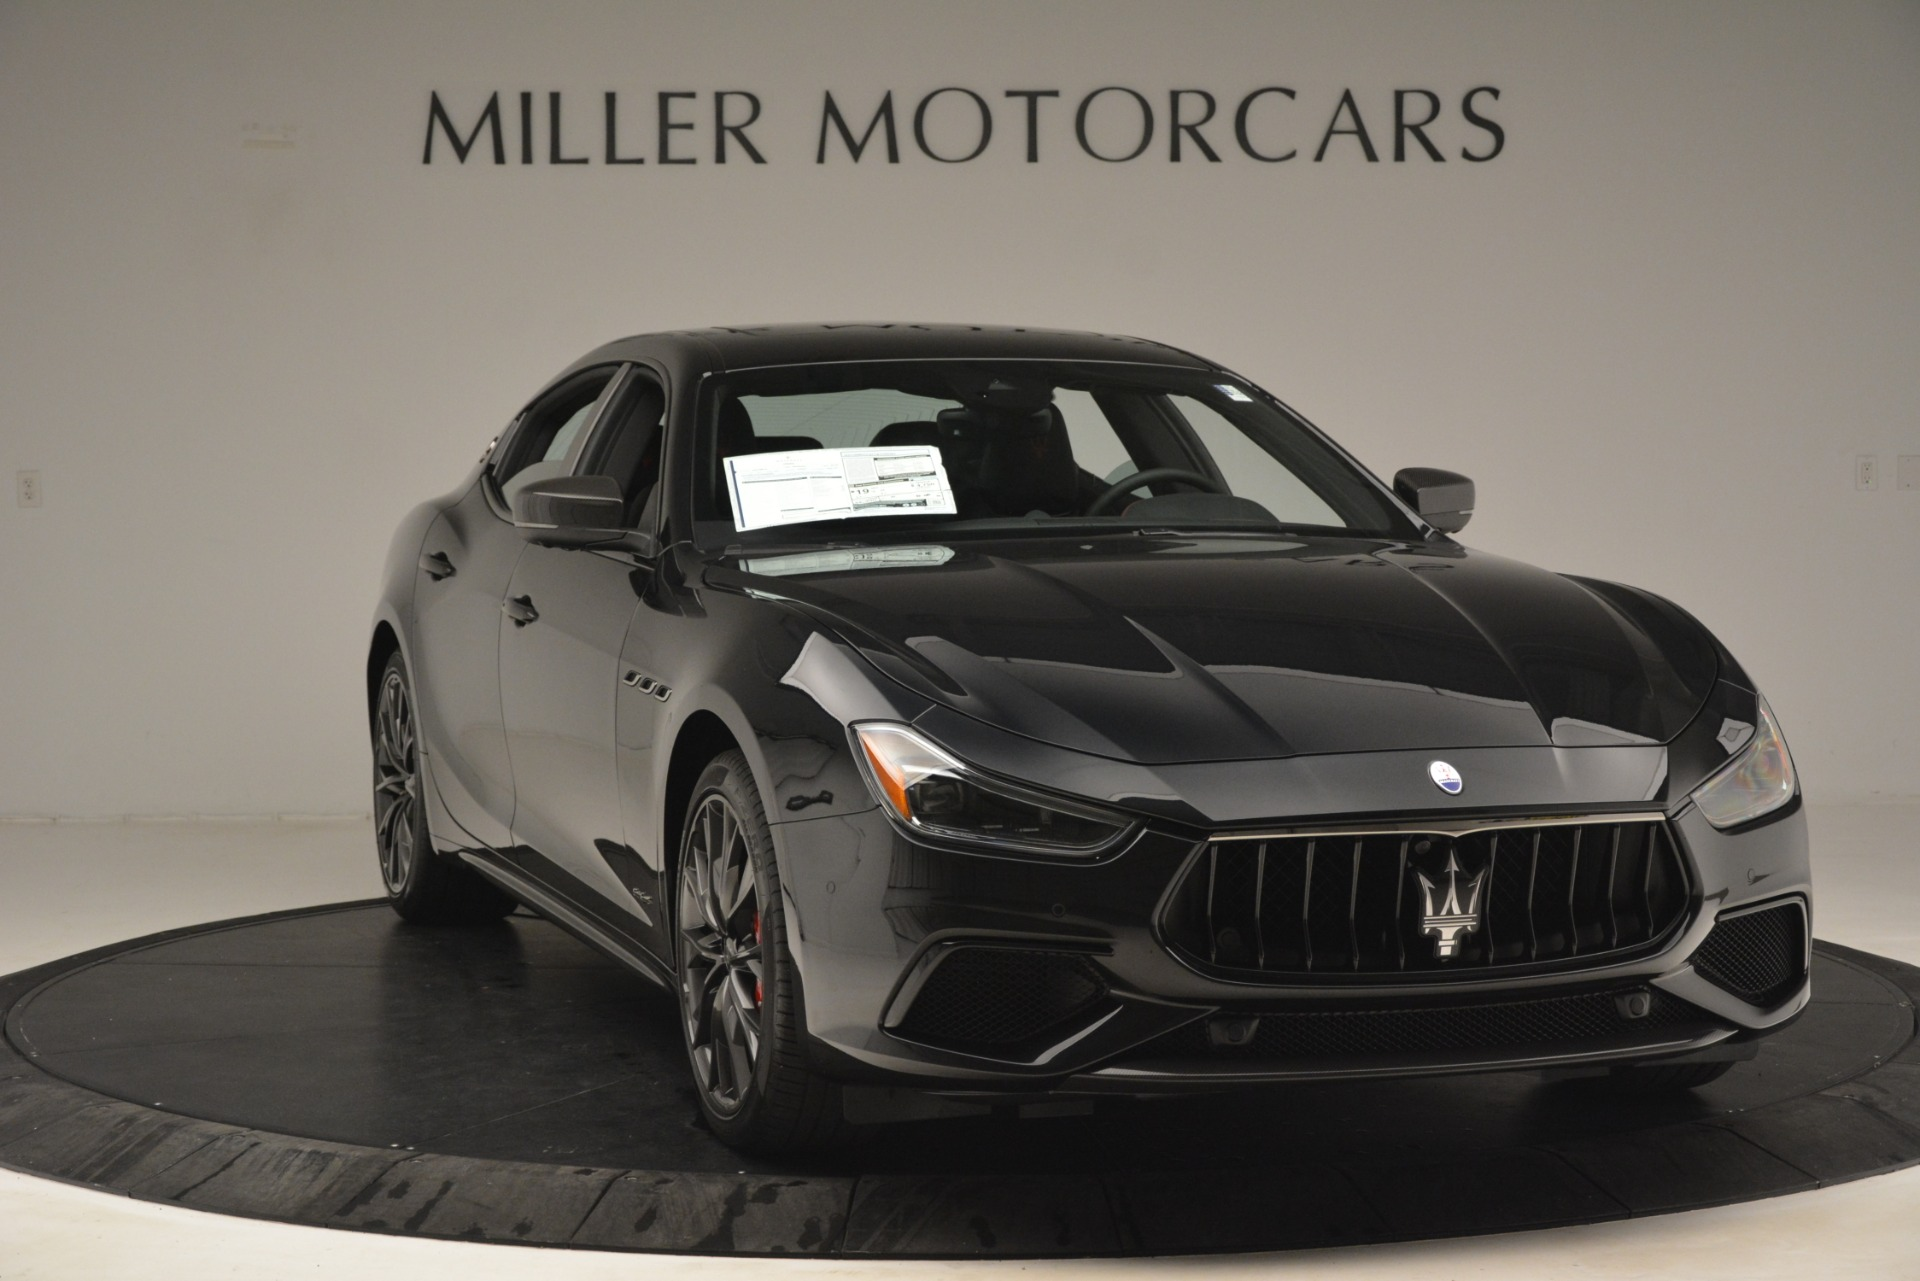 New 2019 Maserati Ghibli S Q4 GranSport For Sale In Greenwich, CT 2924_p11